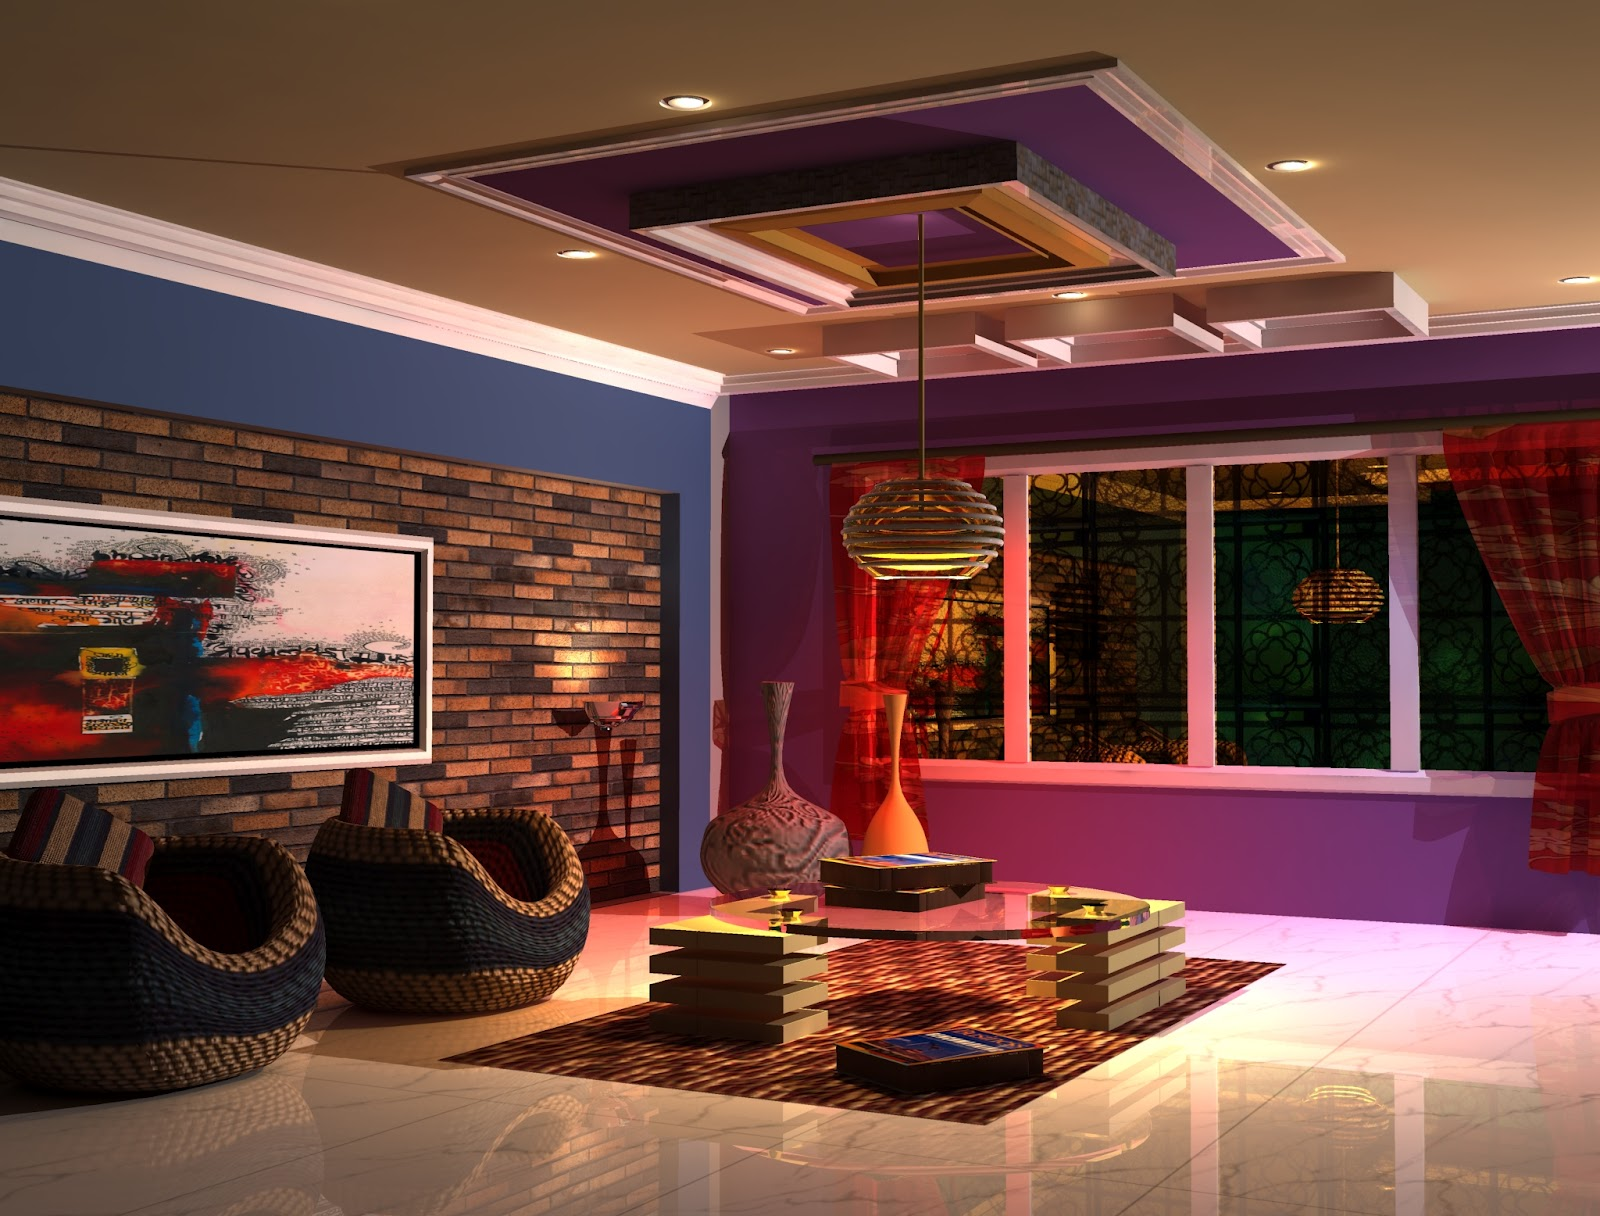 My work interior work living room using 3ds max for Living room 3ds max